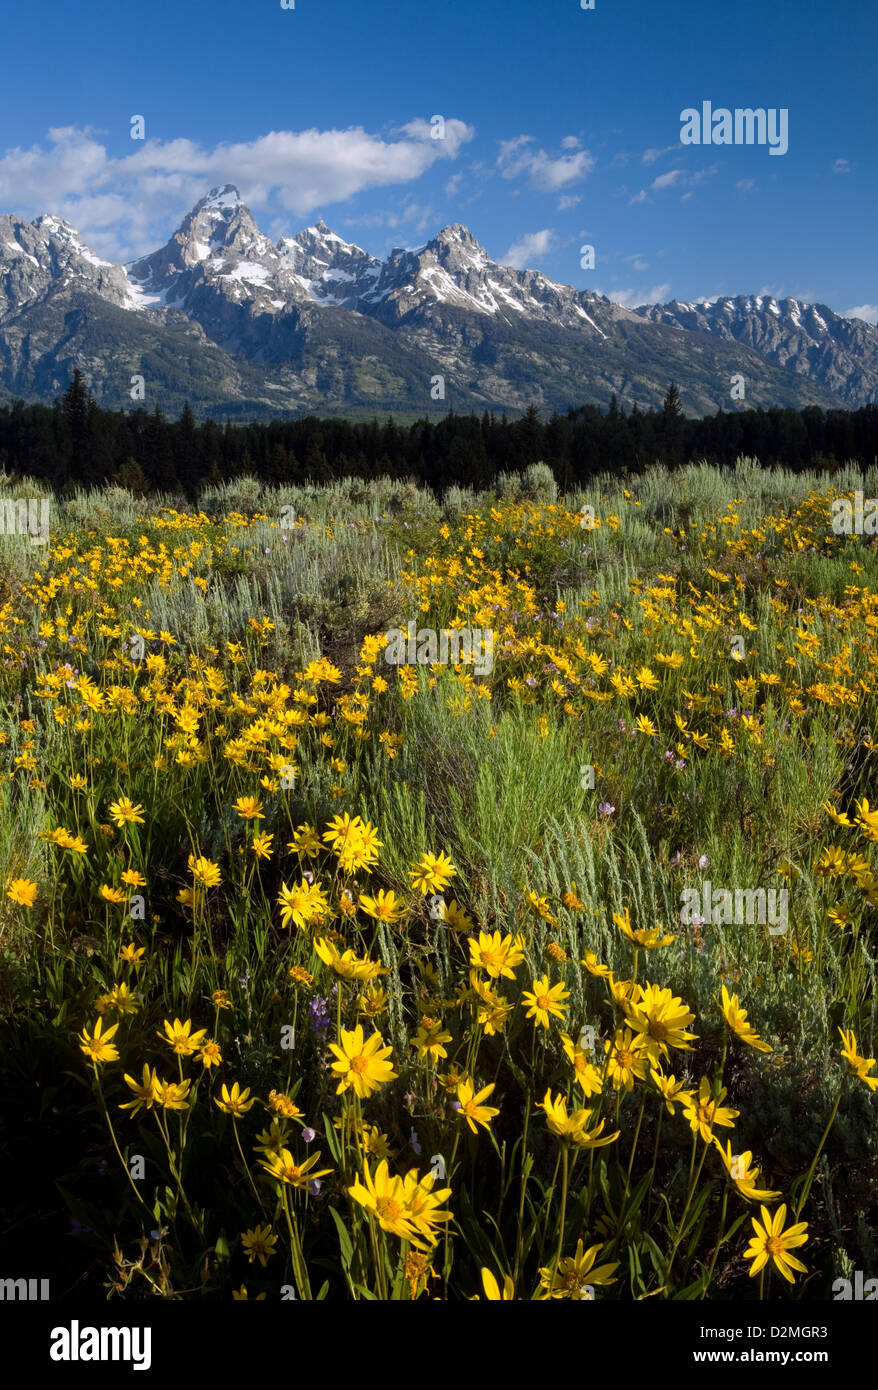 WY00300-00...WYOMING - View of the Teton Range from Blacktail Ponds Overlook in Grand Teton National Park. - Stock Image